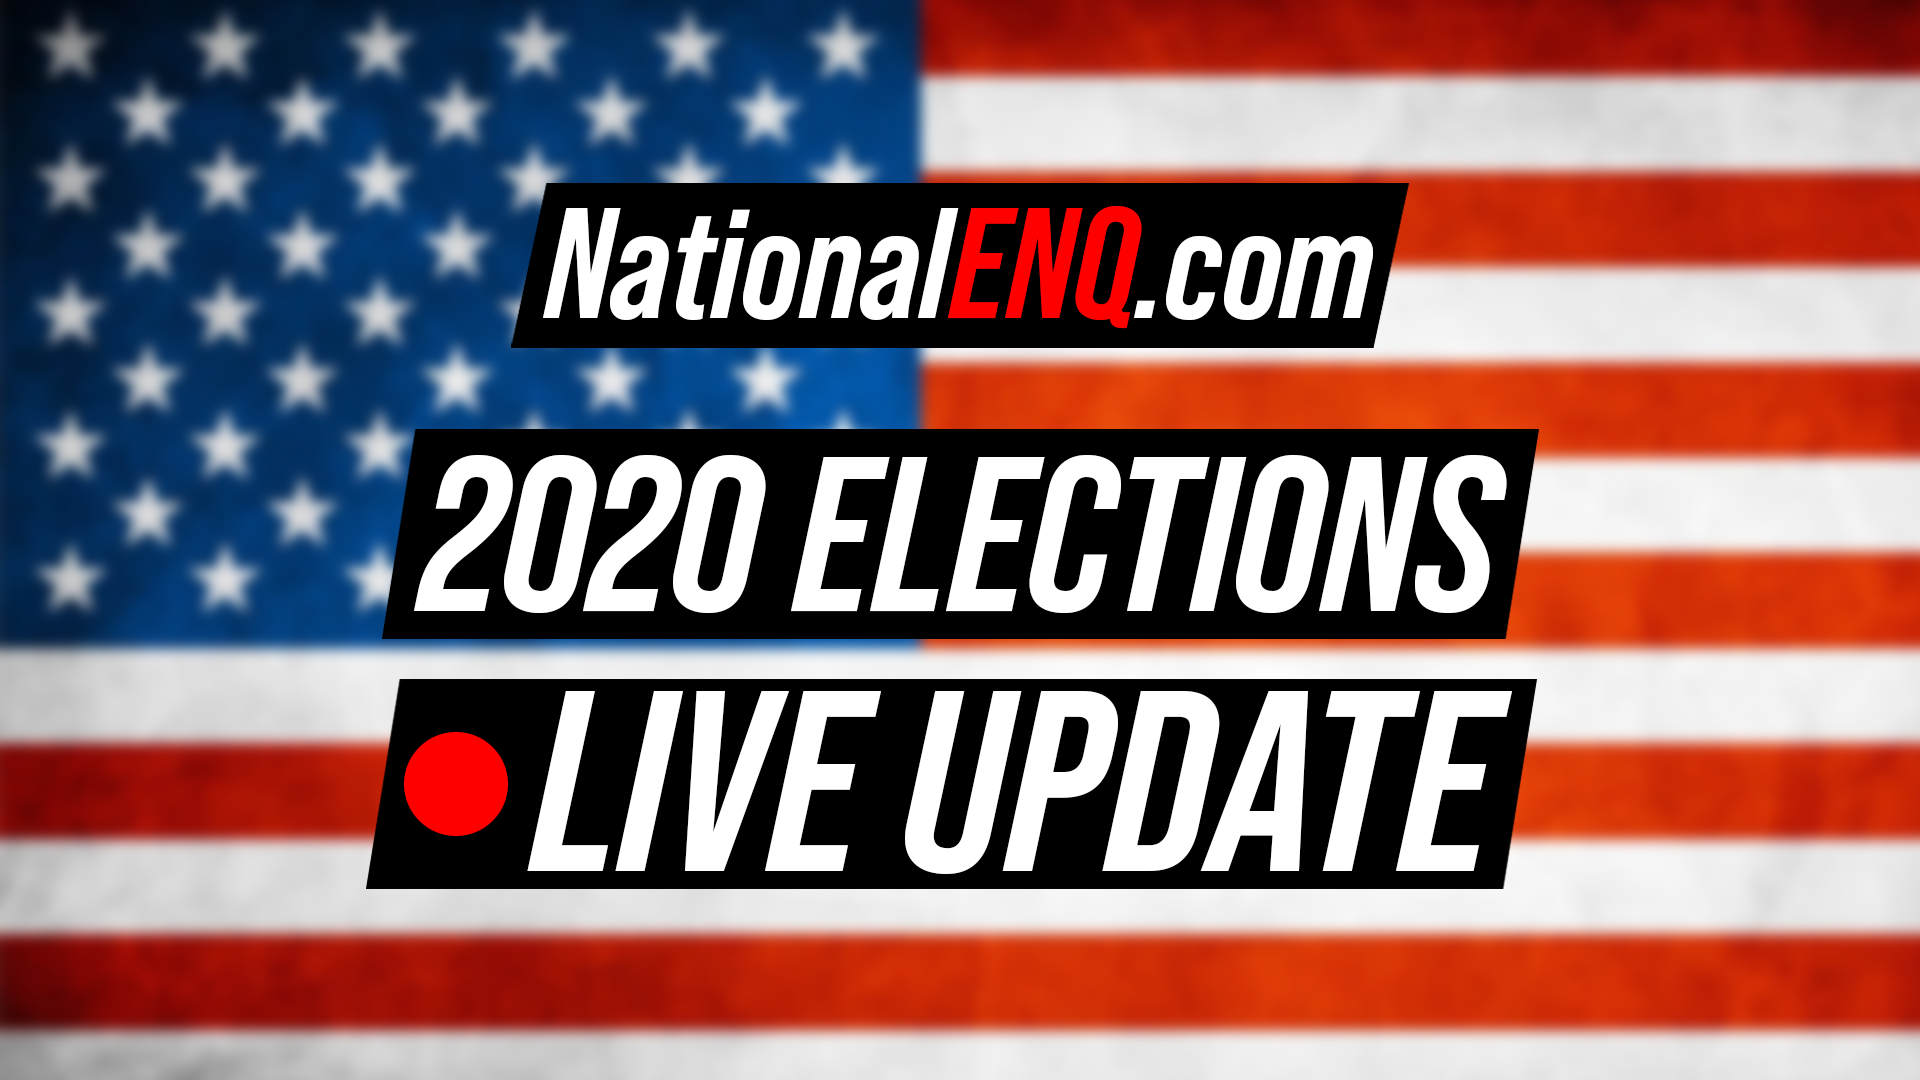 National ENQ U.S. 2020 Elections Live Update: Trump, Biden & Coronavirus